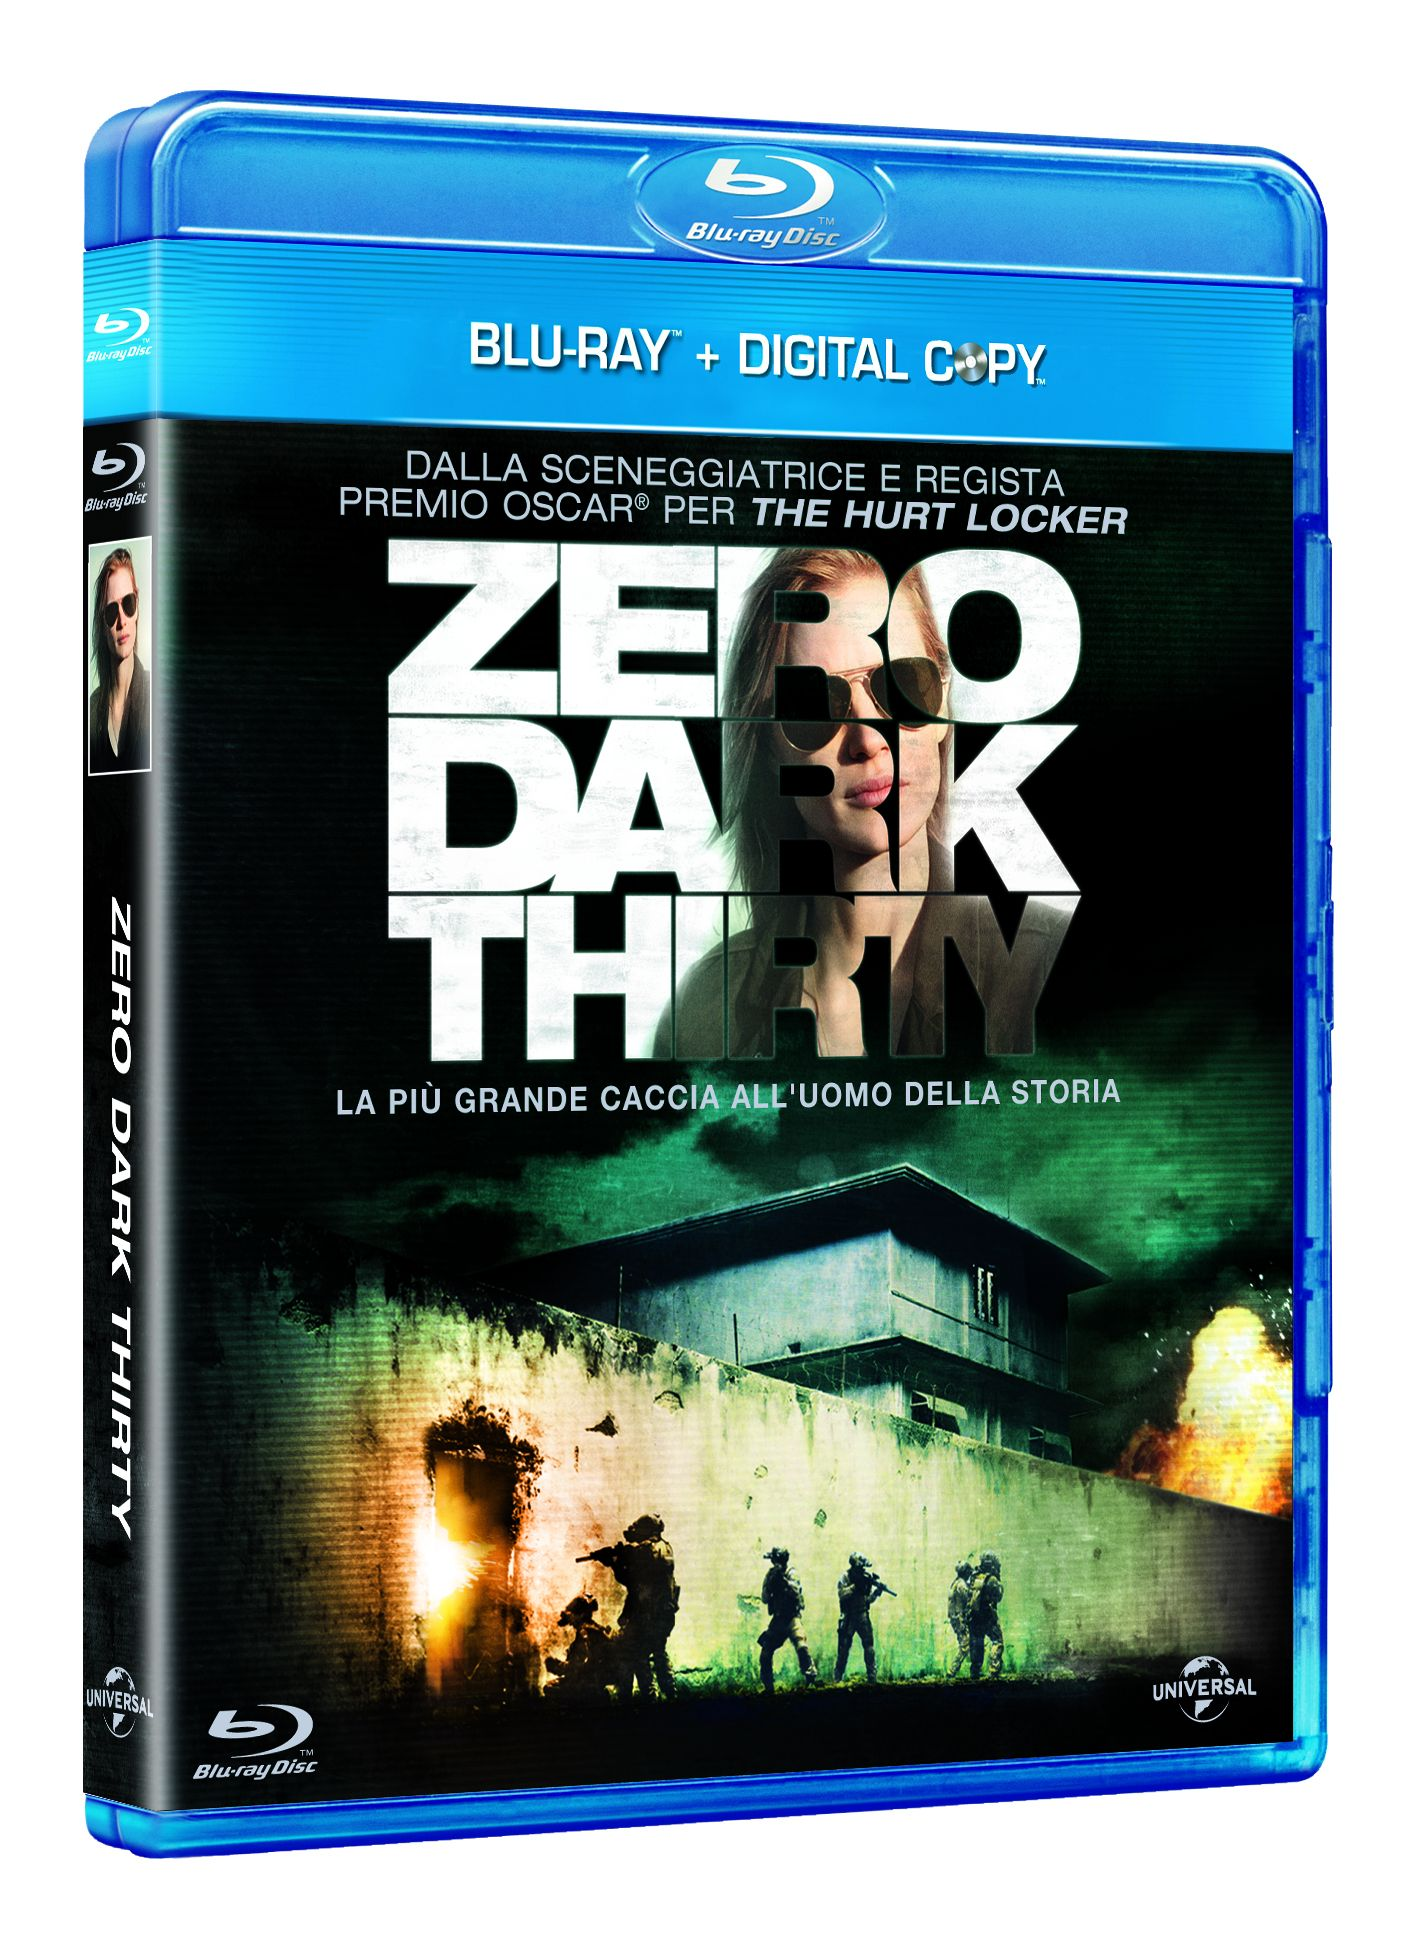 Zero dark thiry blu-ray